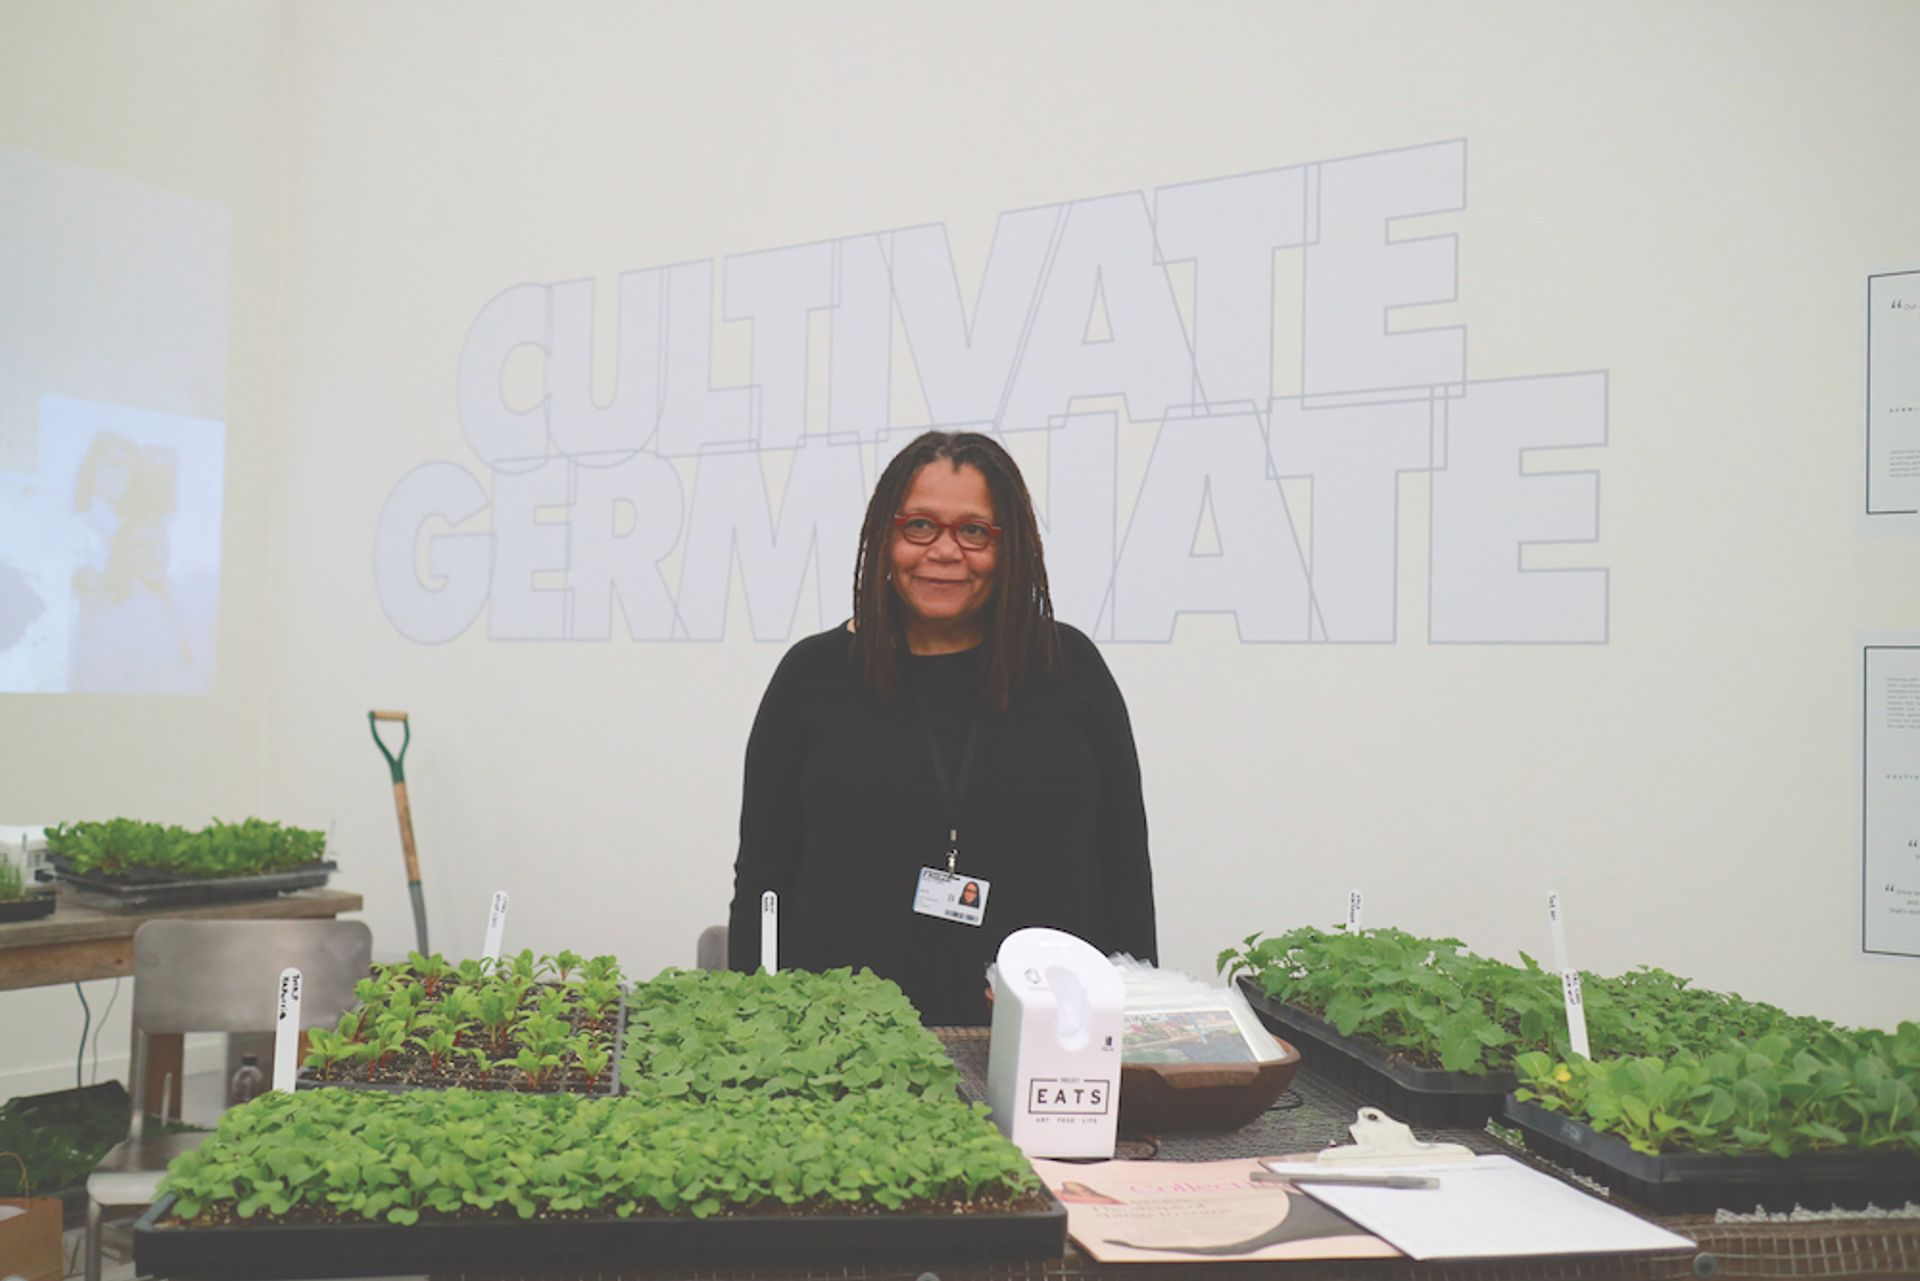 At Frieze New York Linda Goode Bryant is promoting Project Eats, the Brooklyn-based farming charity that she runs Casey Fatchett